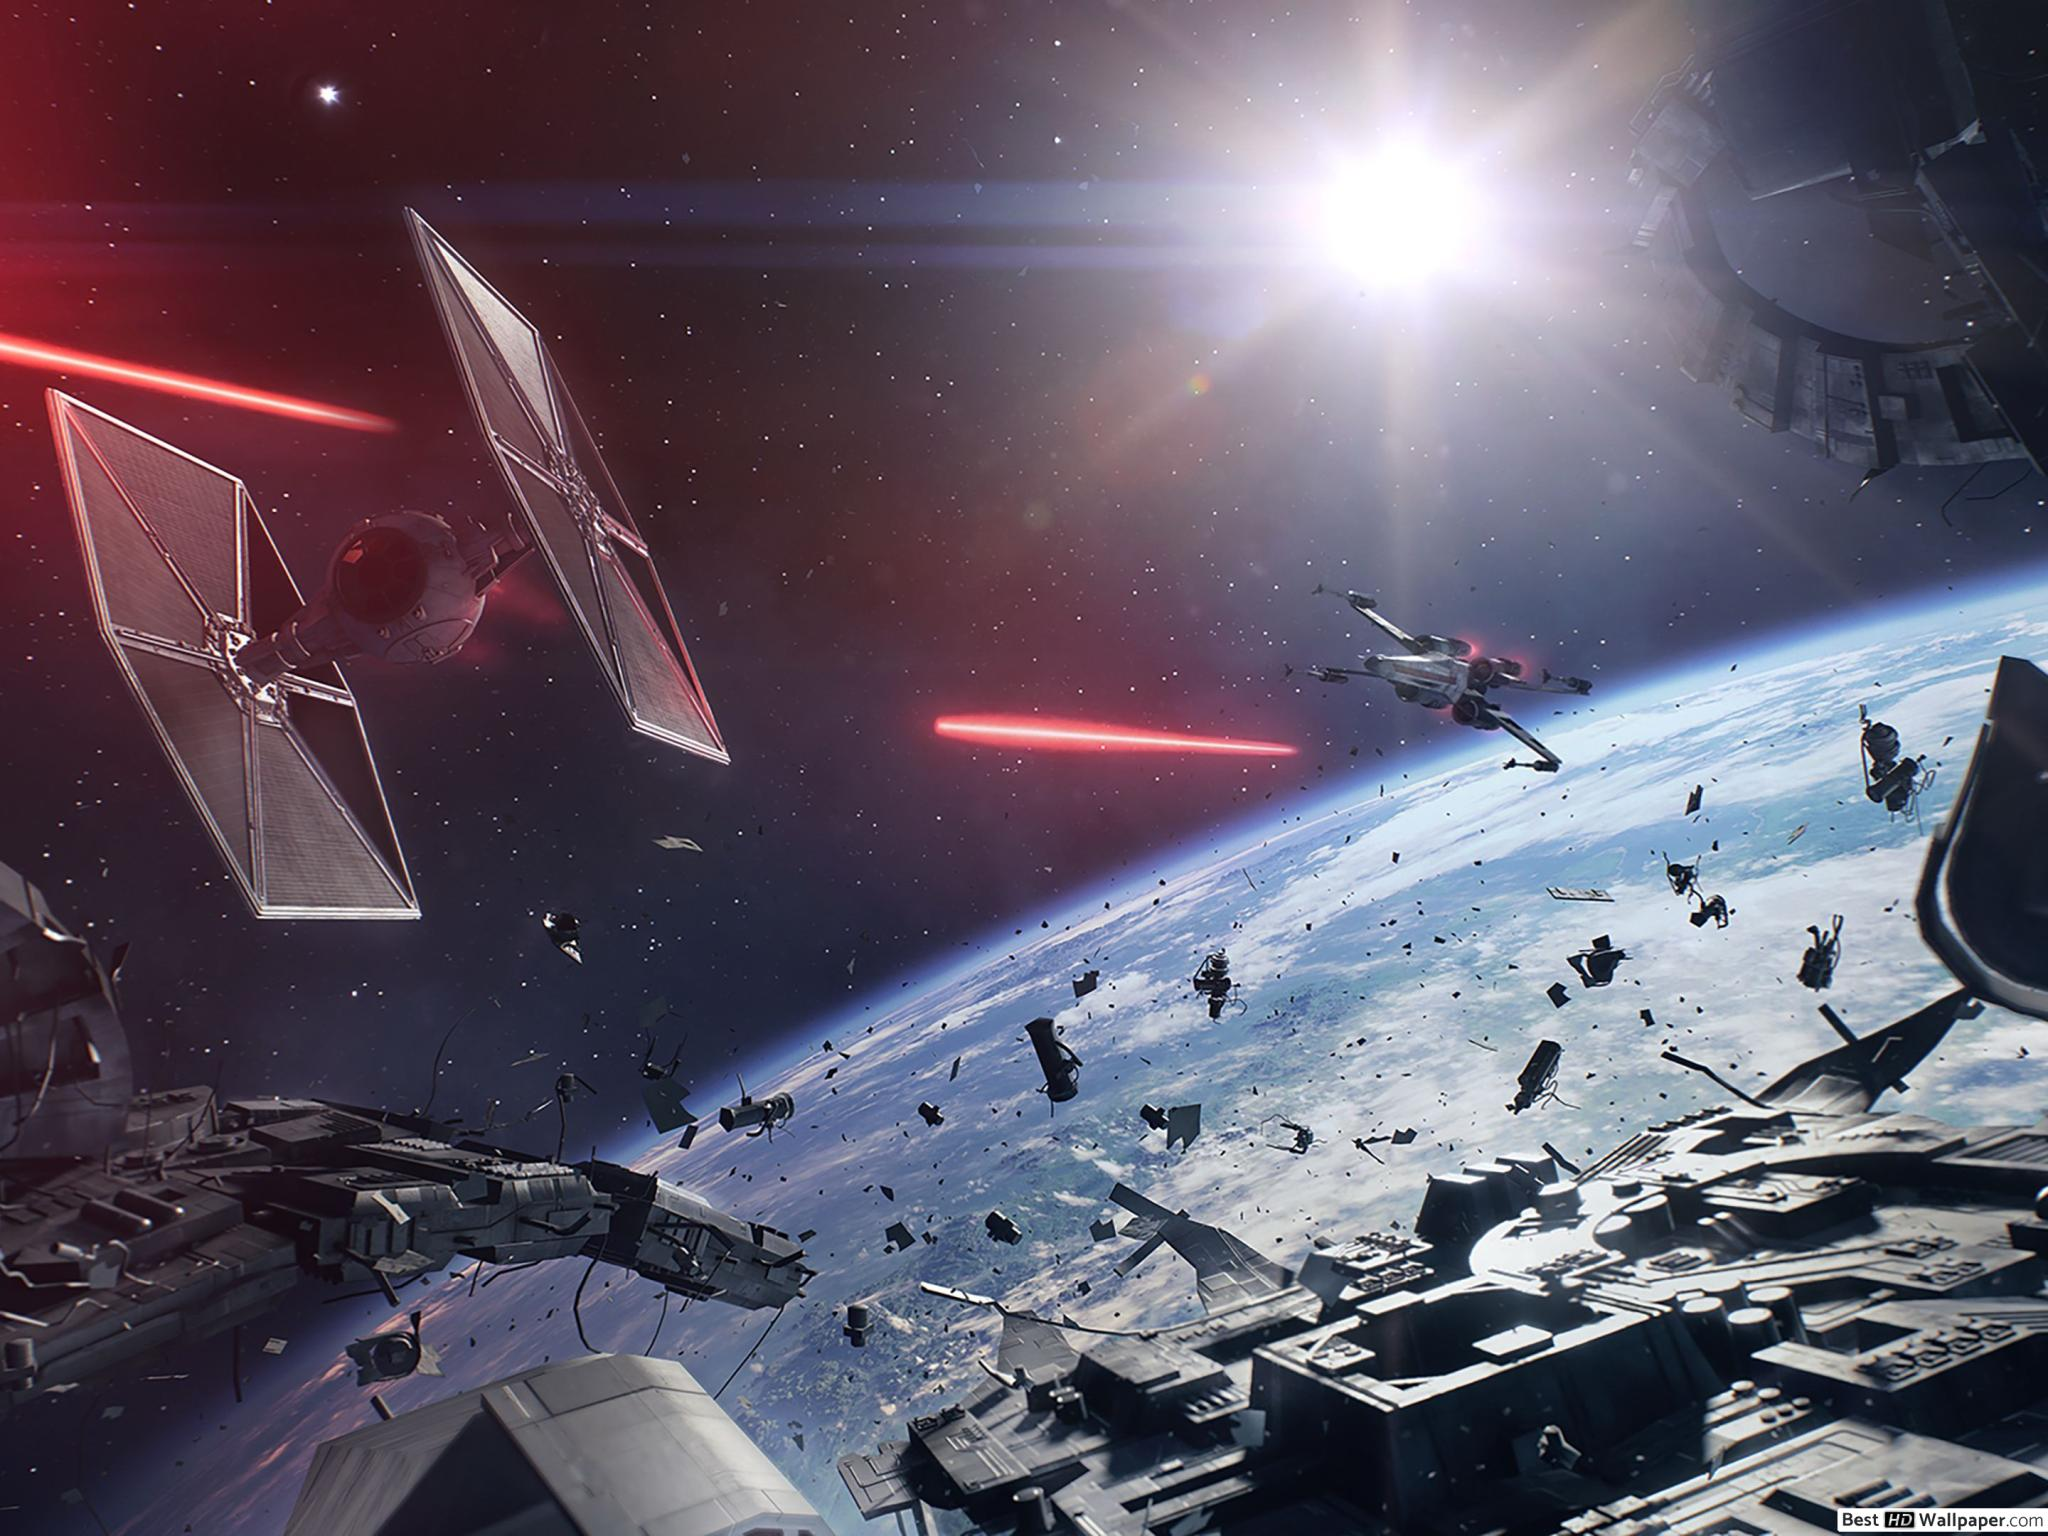 Epic Star Wars Space Battle 3230249 Hd Wallpaper Backgrounds Download